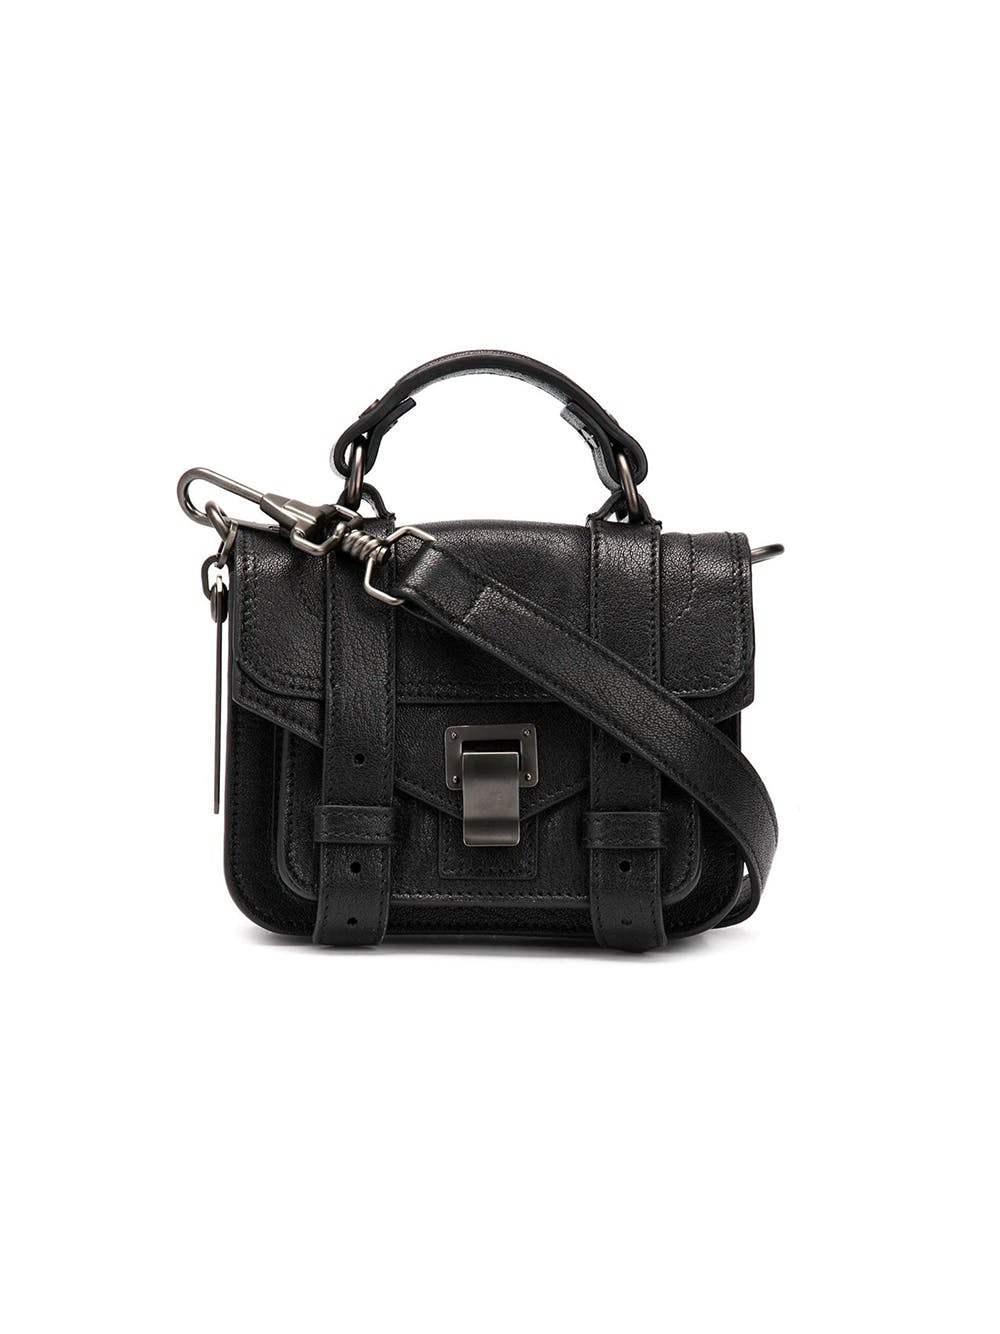 PROENZA SCHOULER HANDBAG COLLECTION: PS1